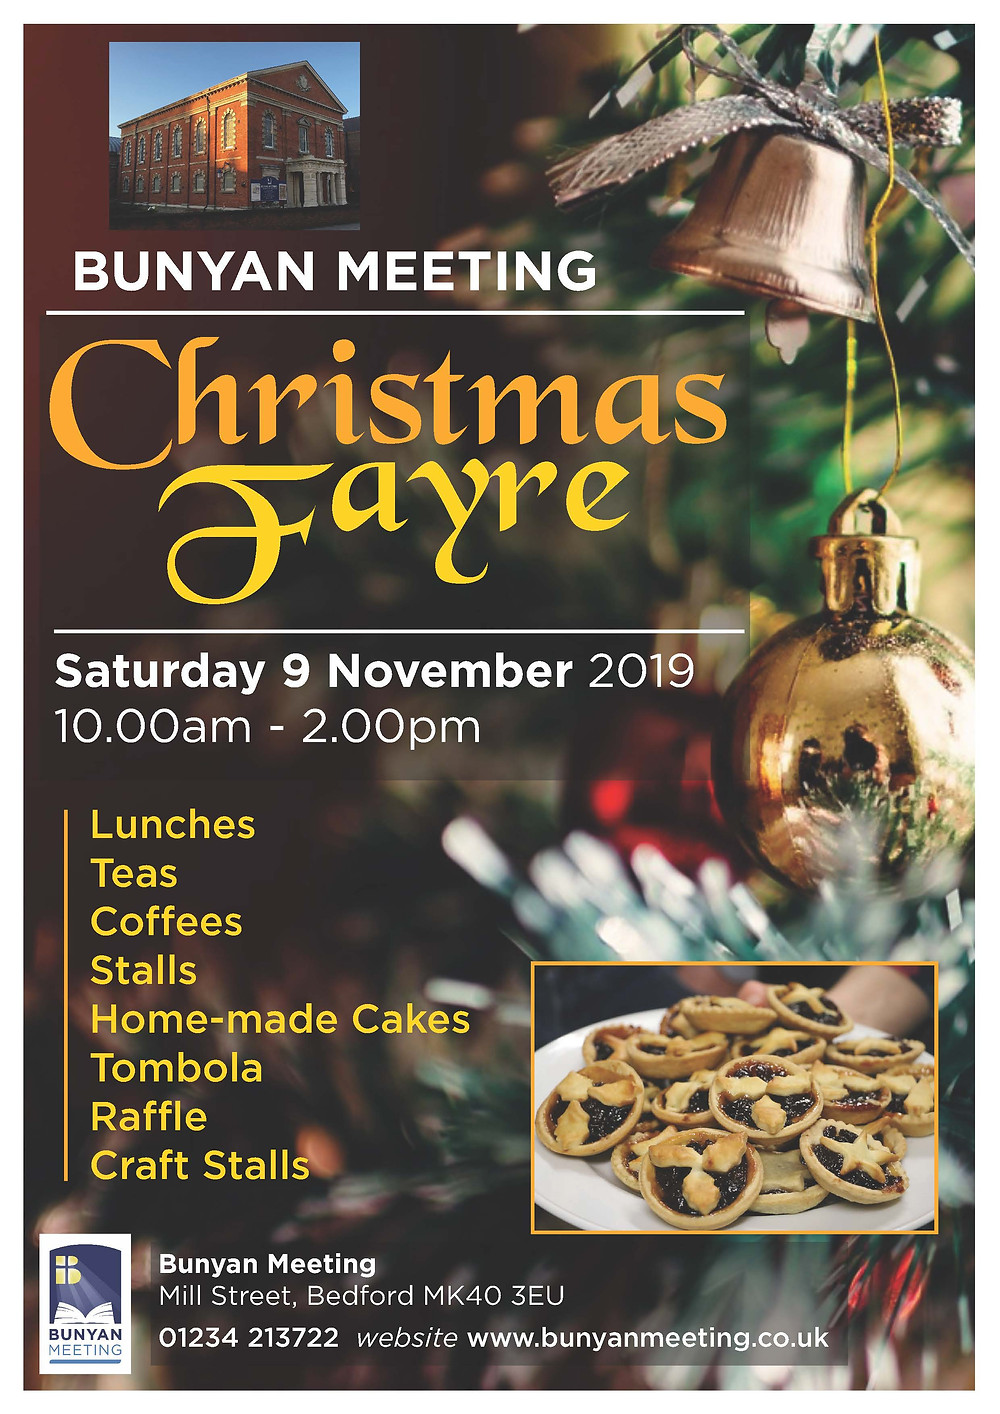 Start Christmas early and come to the Christmas Fayre at Bunyan Meeting.  Starts 10.00am